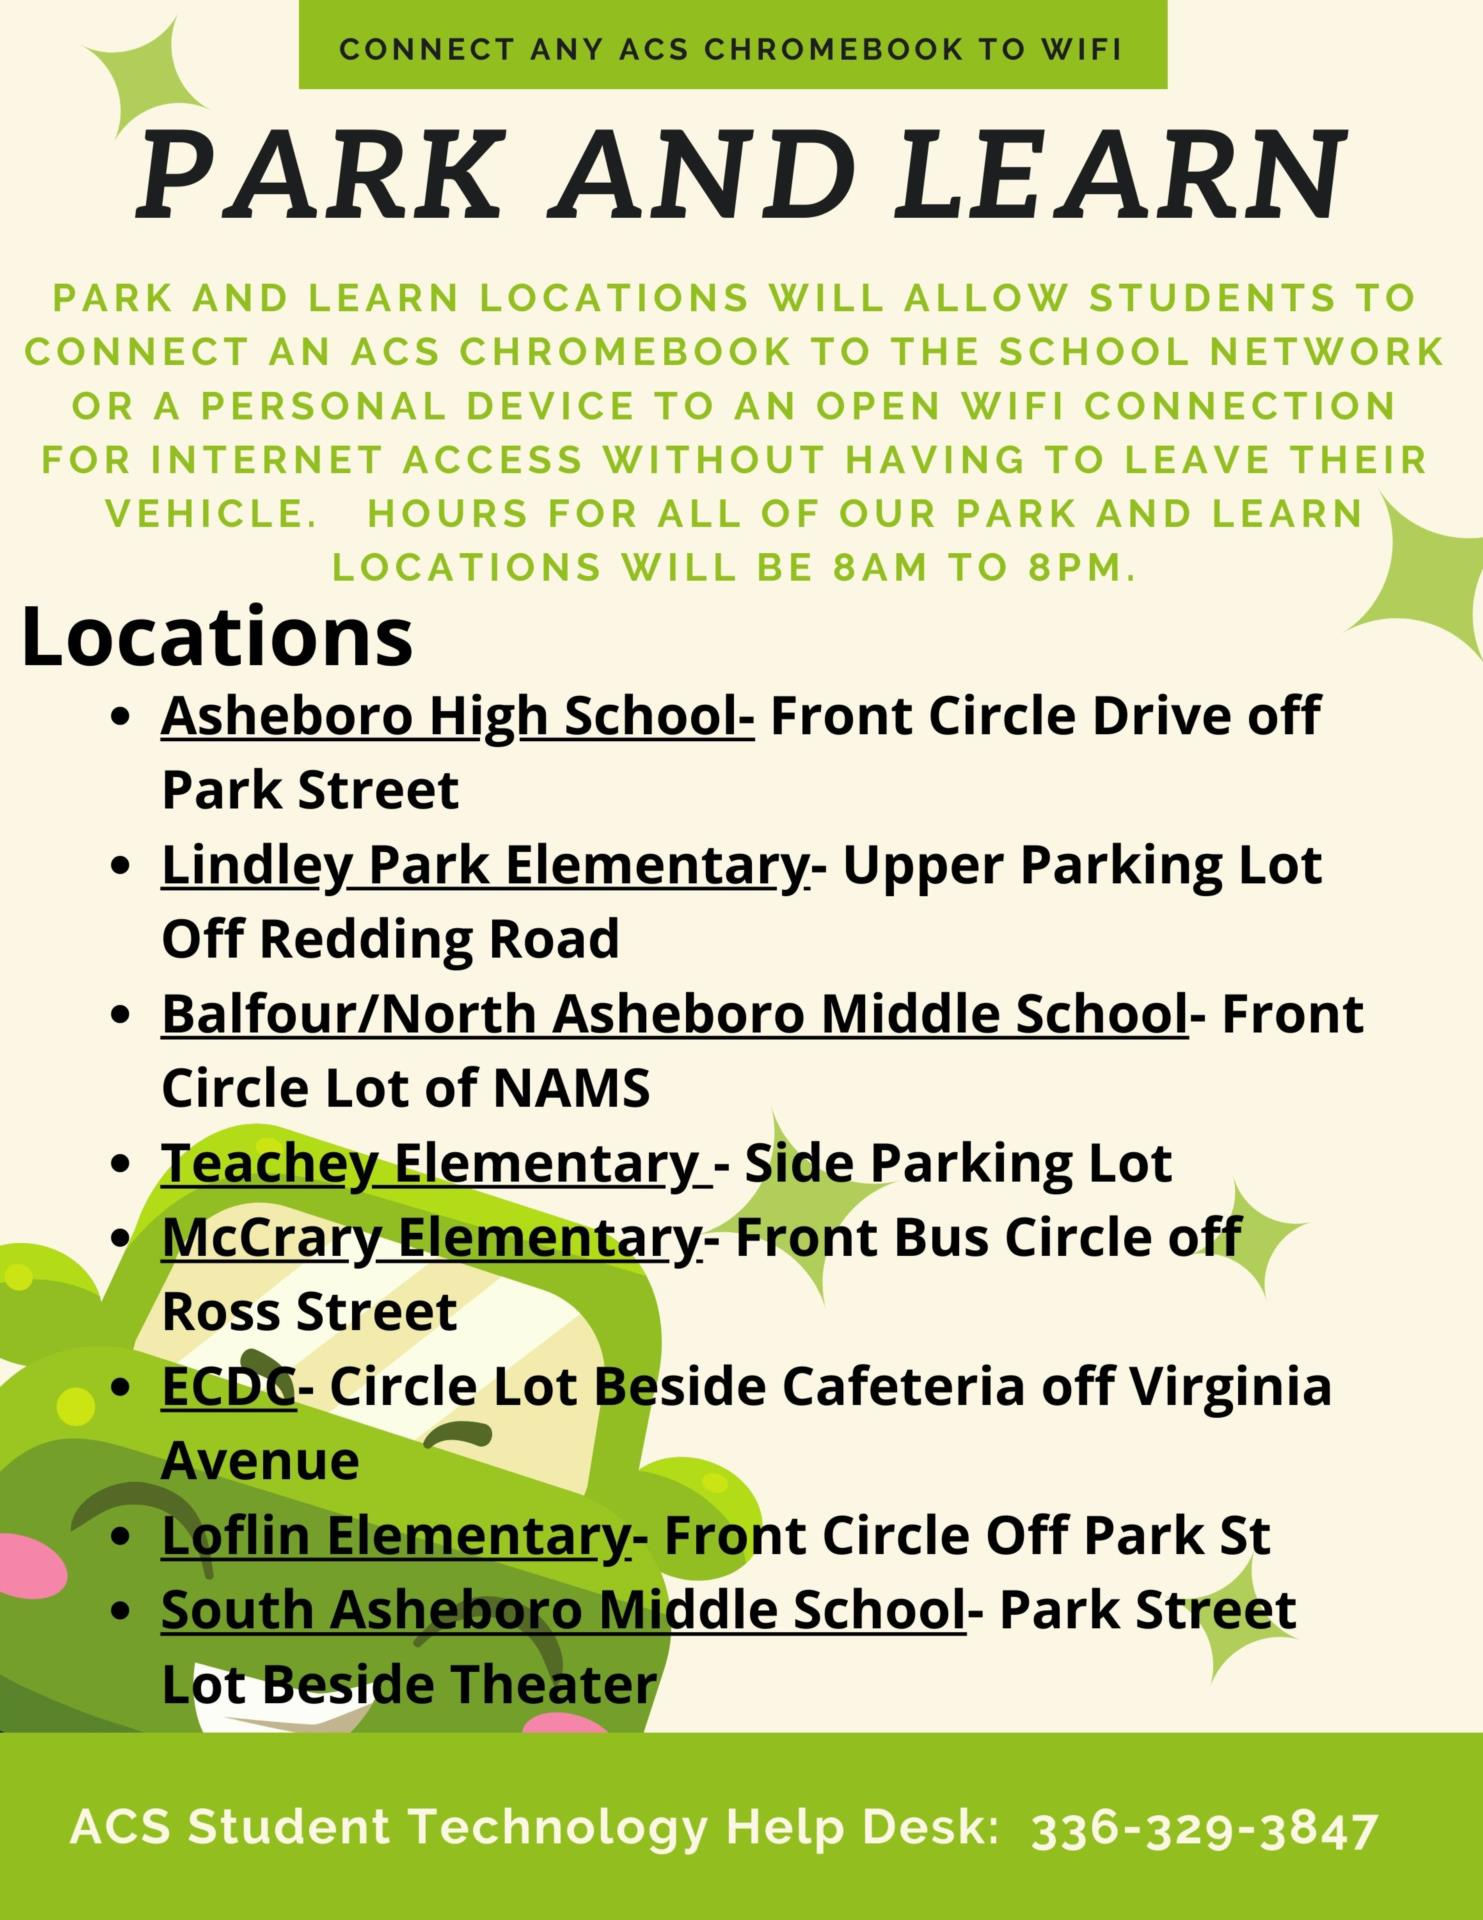 Flyer with the following information:PARK AND LEARN    Park and Learn locations will allow students to connect an ACS Chromebook to the school network or a personal device to an open wifi connection for internet access without having to leave their vehicle.   Hours for all of our Park and Learn locations will be 8am to 8pm. Locations Asheboro High School- Front Circle Drive off Park St Lindley Park Elementary- Upper Parking Lot off Redding Road Balfour / North Asheboro Middle School- Front Circle Lot of NAMS Teachey Elementary - Side Parking Lot McCrary Elementary- Front Bus Circle off Ross Street ECDC- Circle lot beside Cafeteria off Virginia Avenue Loflin Elementary- Front Circle off Park St South Asheboro Middle School- Park Street Lot beside Theater""